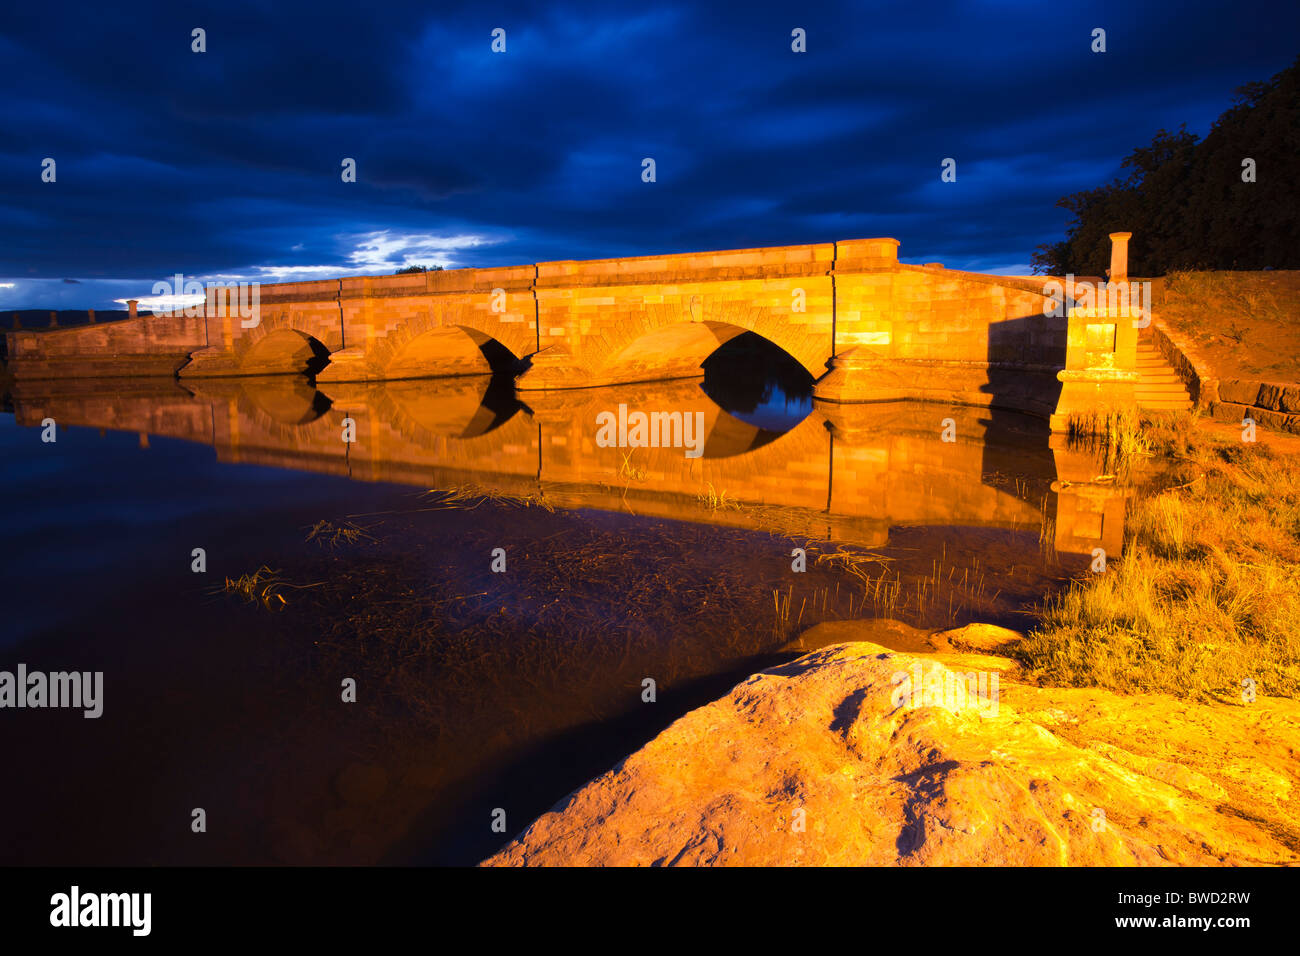 The attractive convict built sandstone bridge at Ross in Central Tasmania, floodlit at night - Stock Image